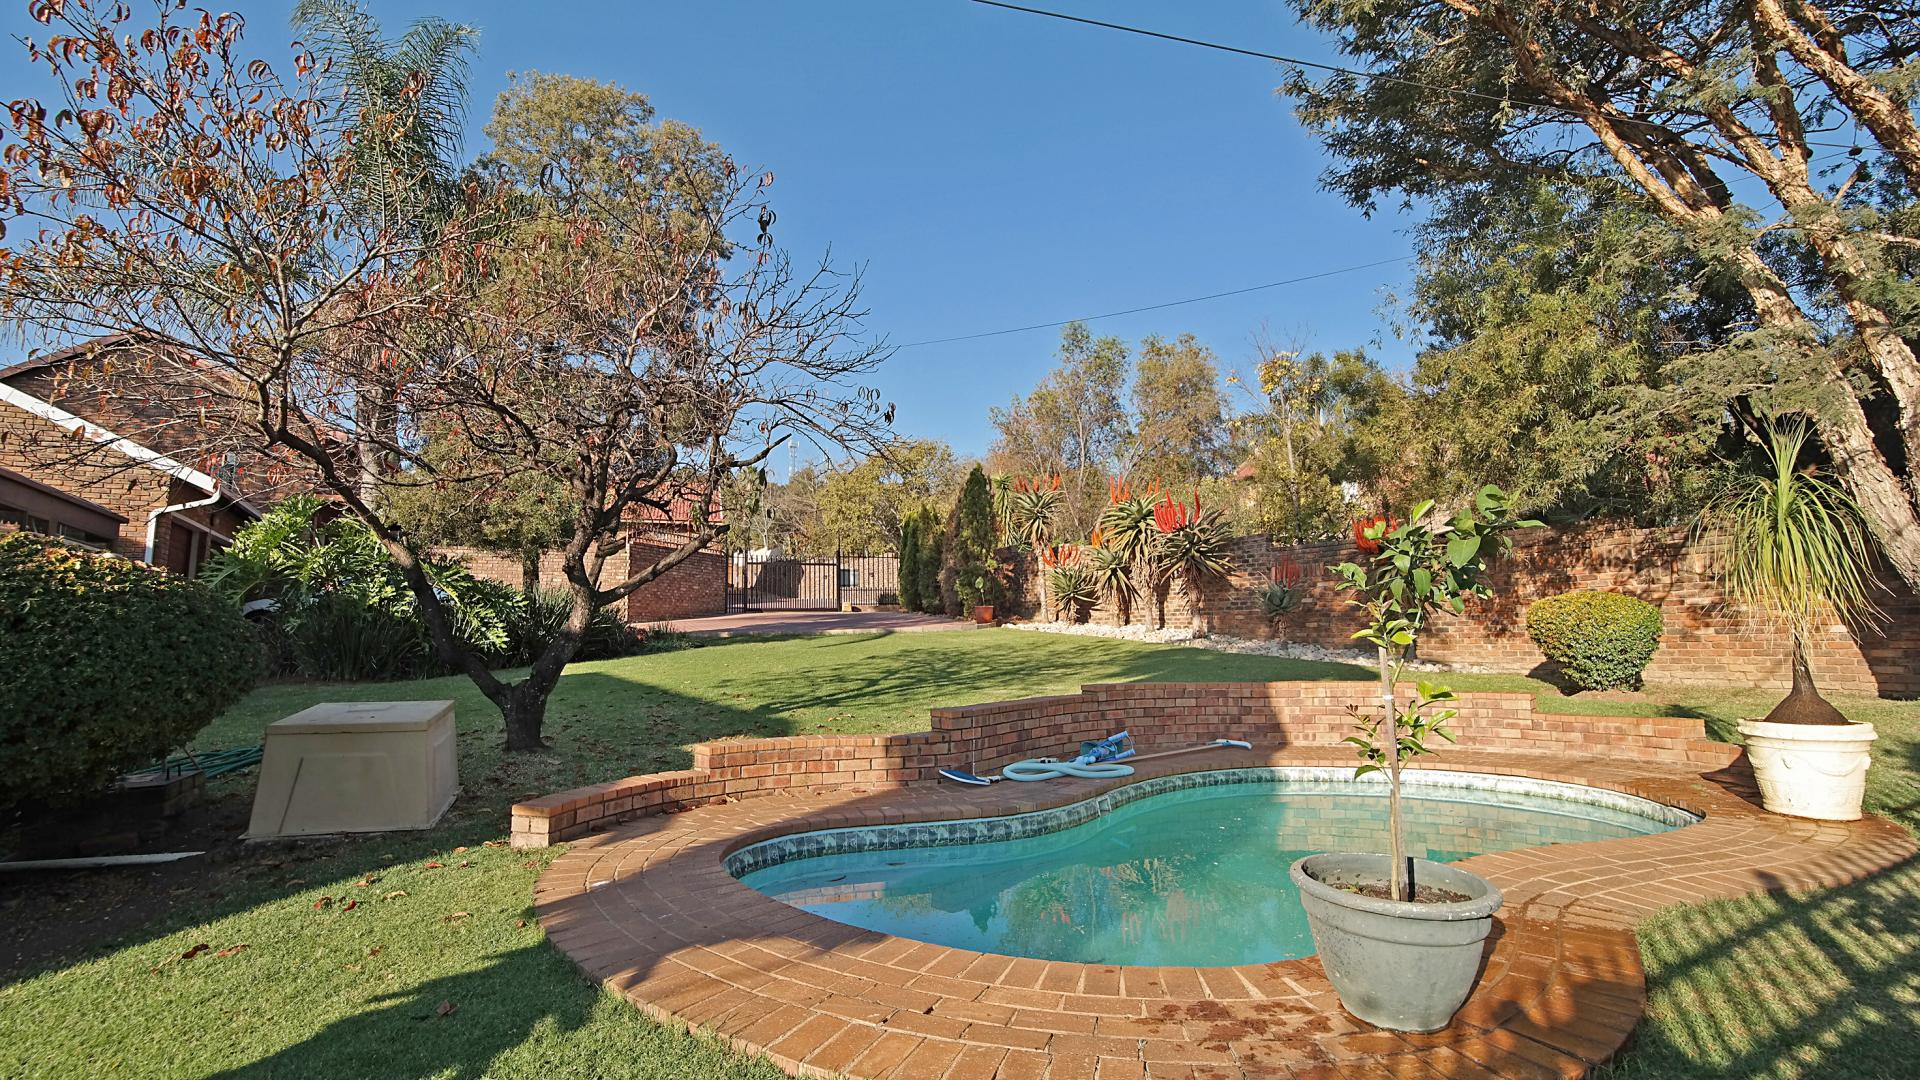 3 bedroom duet for sale for sale in moreletapark private for Landscaping rocks for sale johannesburg